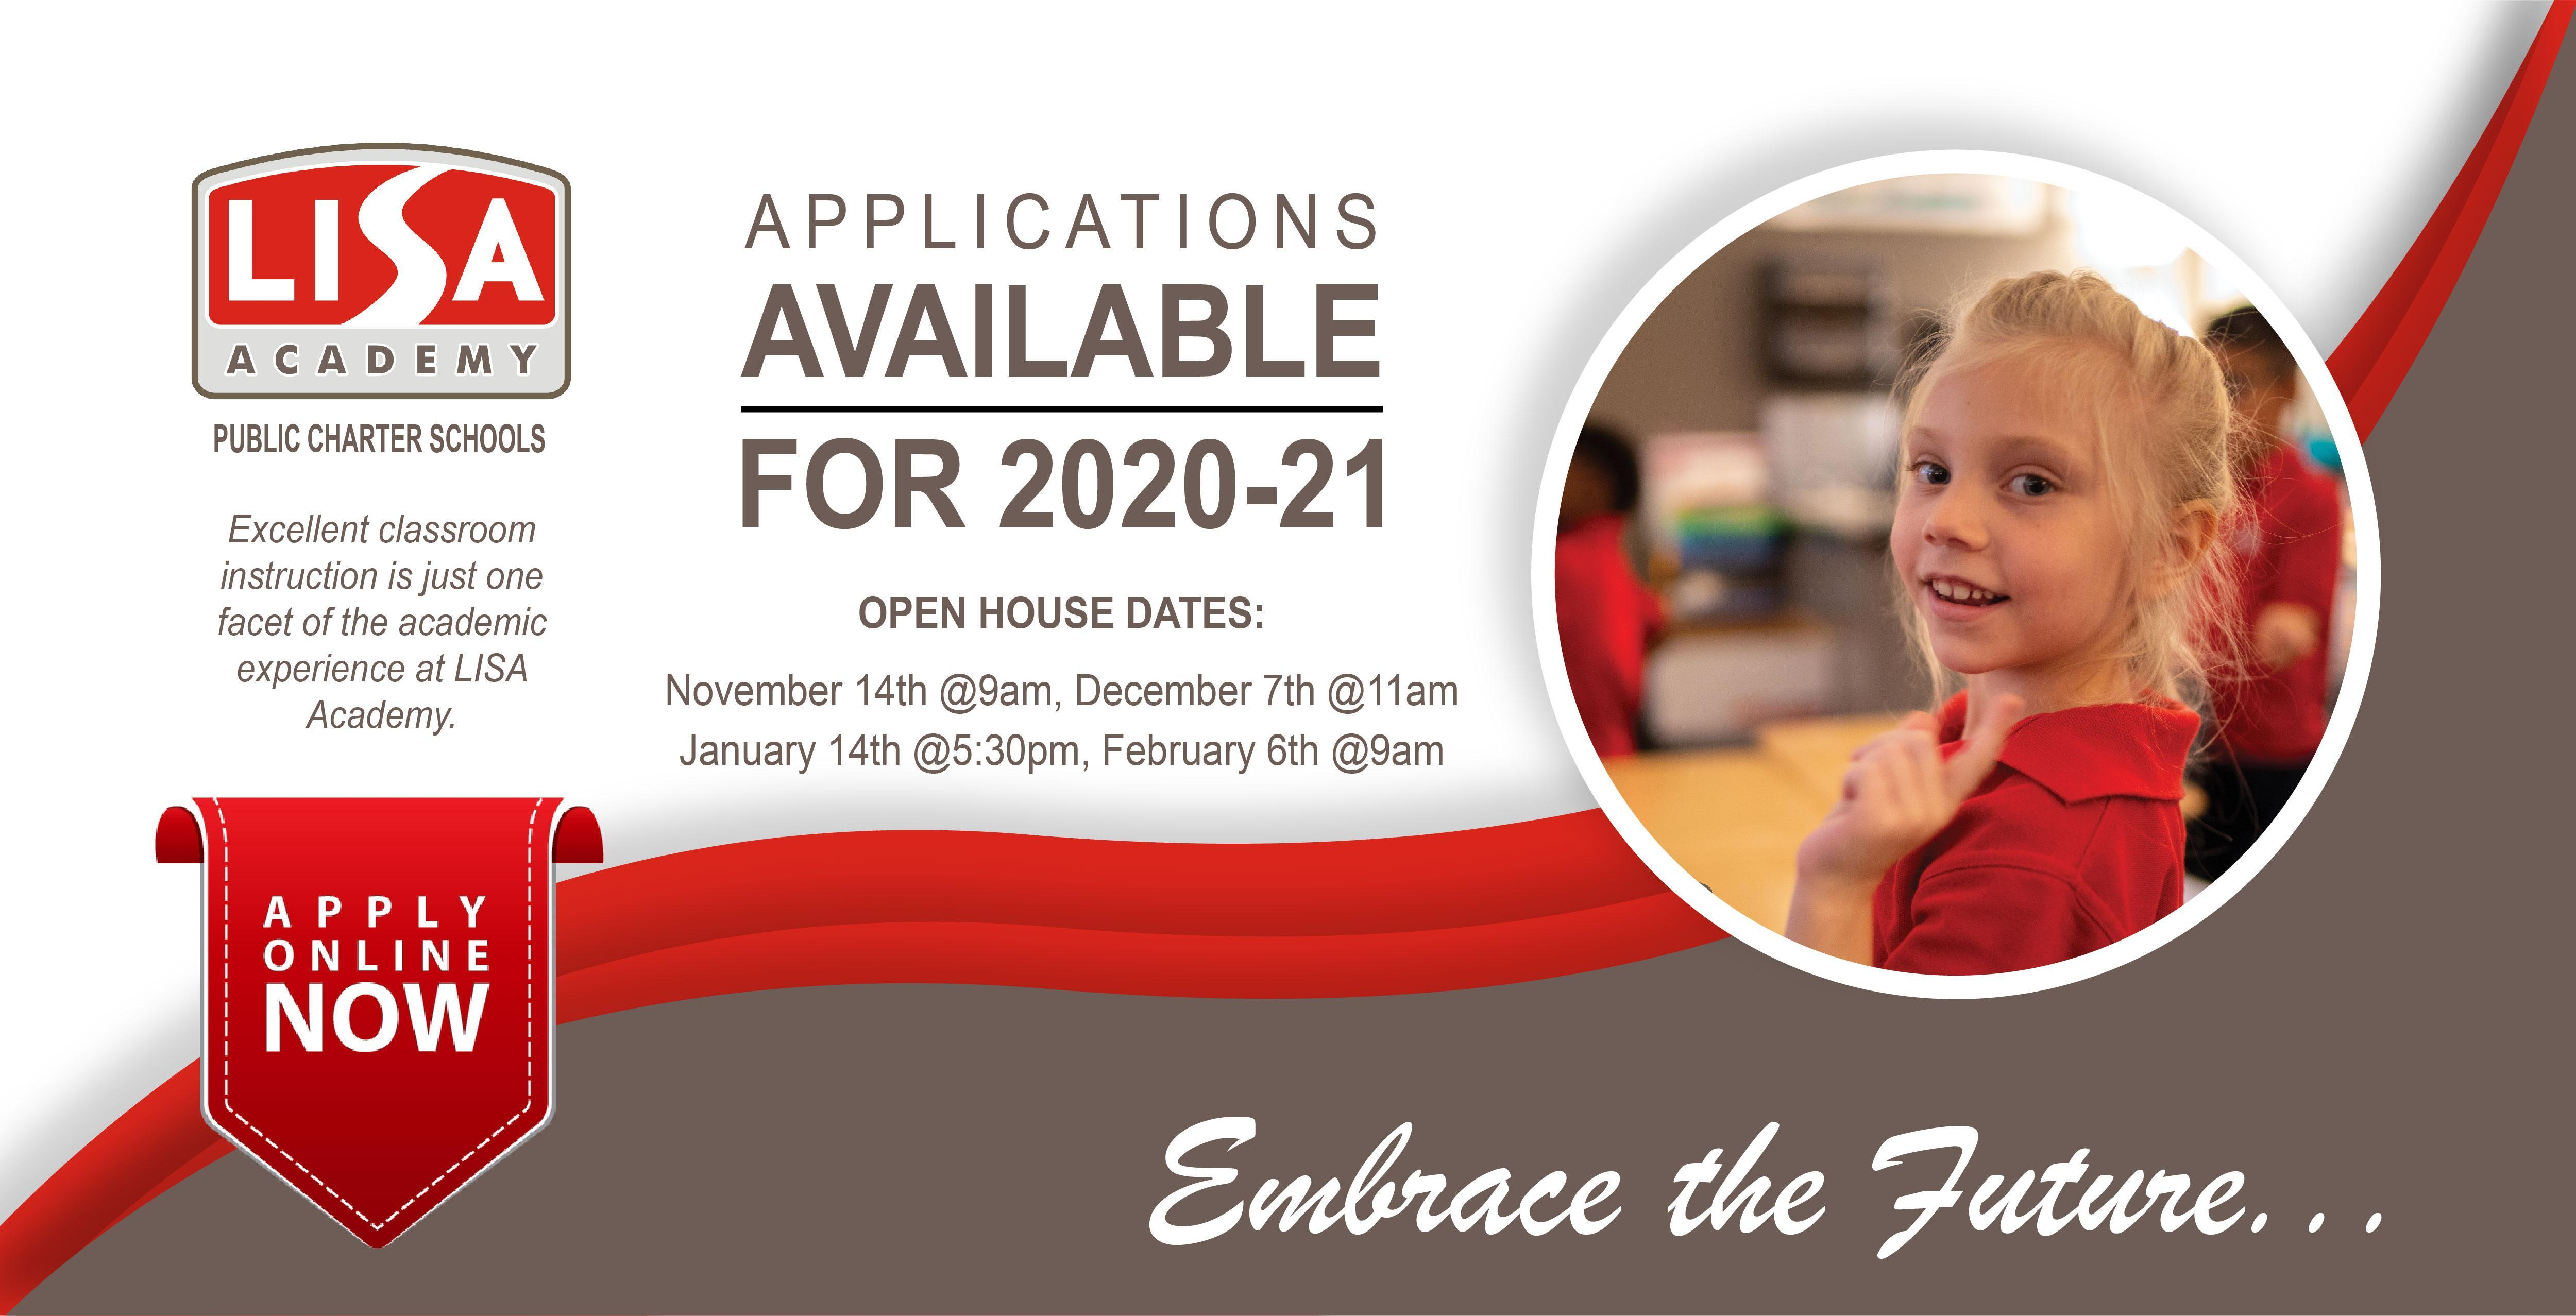 Apply Now for the 2020-2021 School Year Image